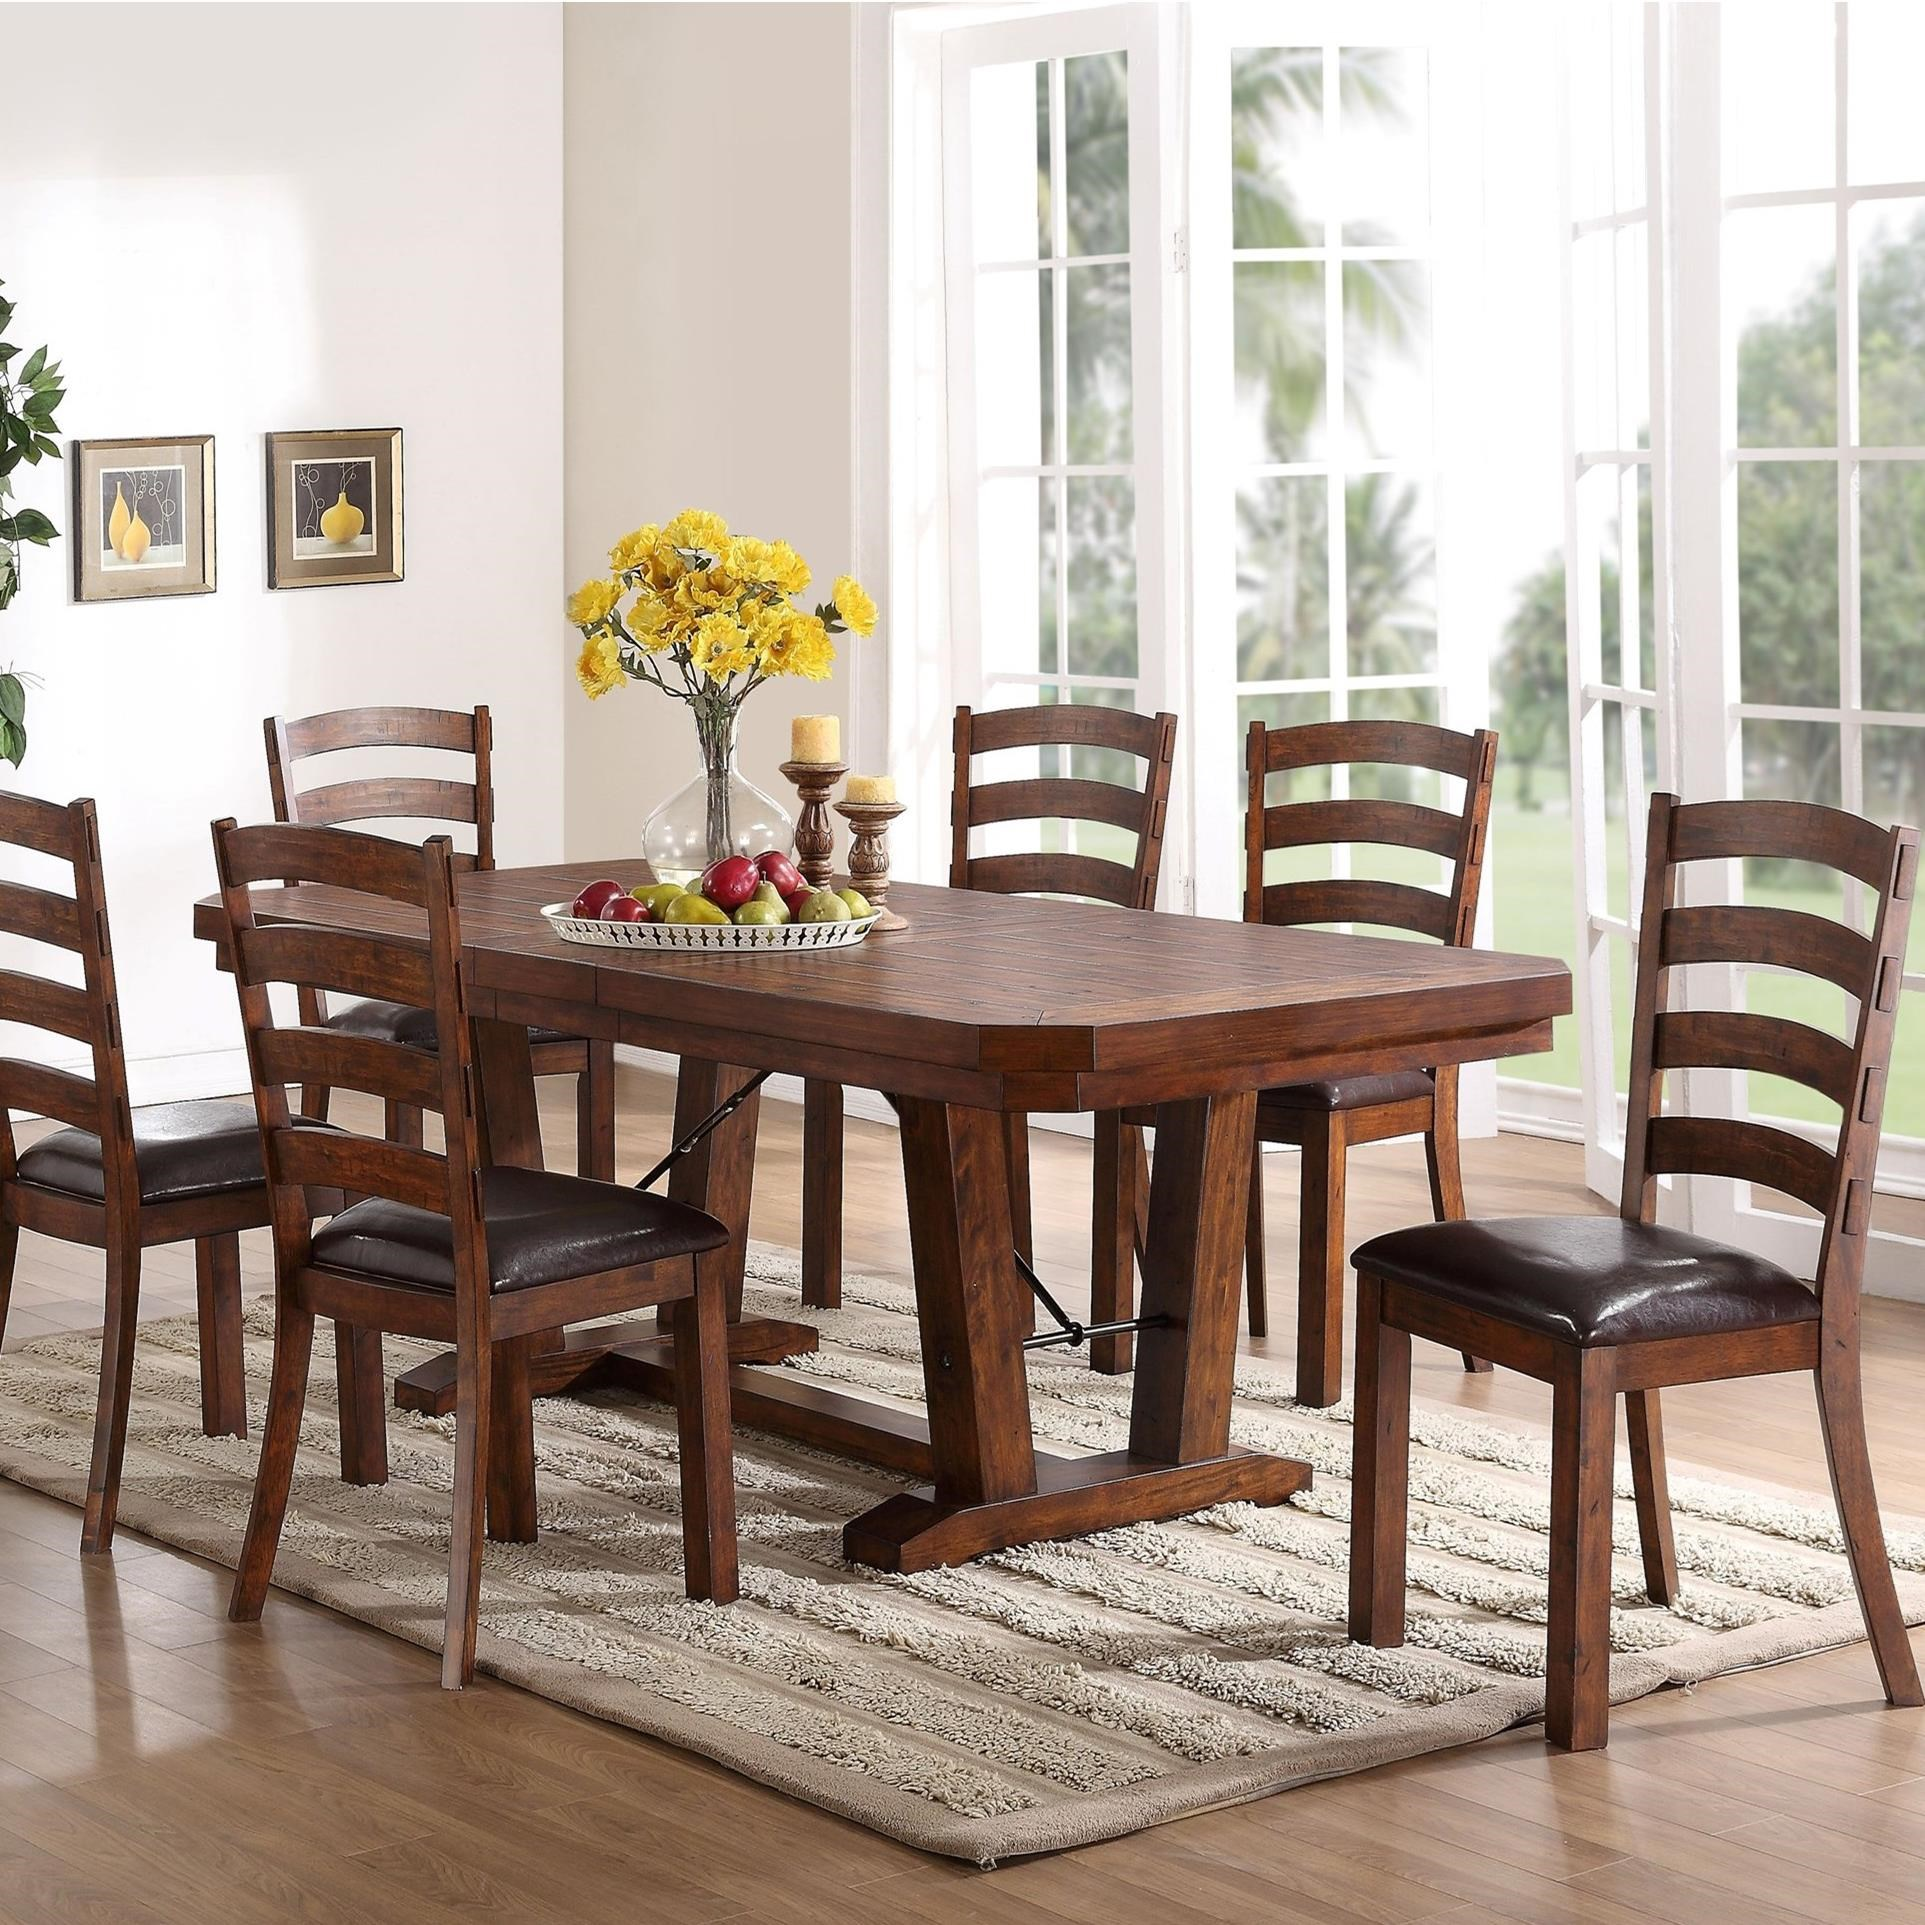 New Classic Lanesboro 7 Piece Dining Table And Ladder Back